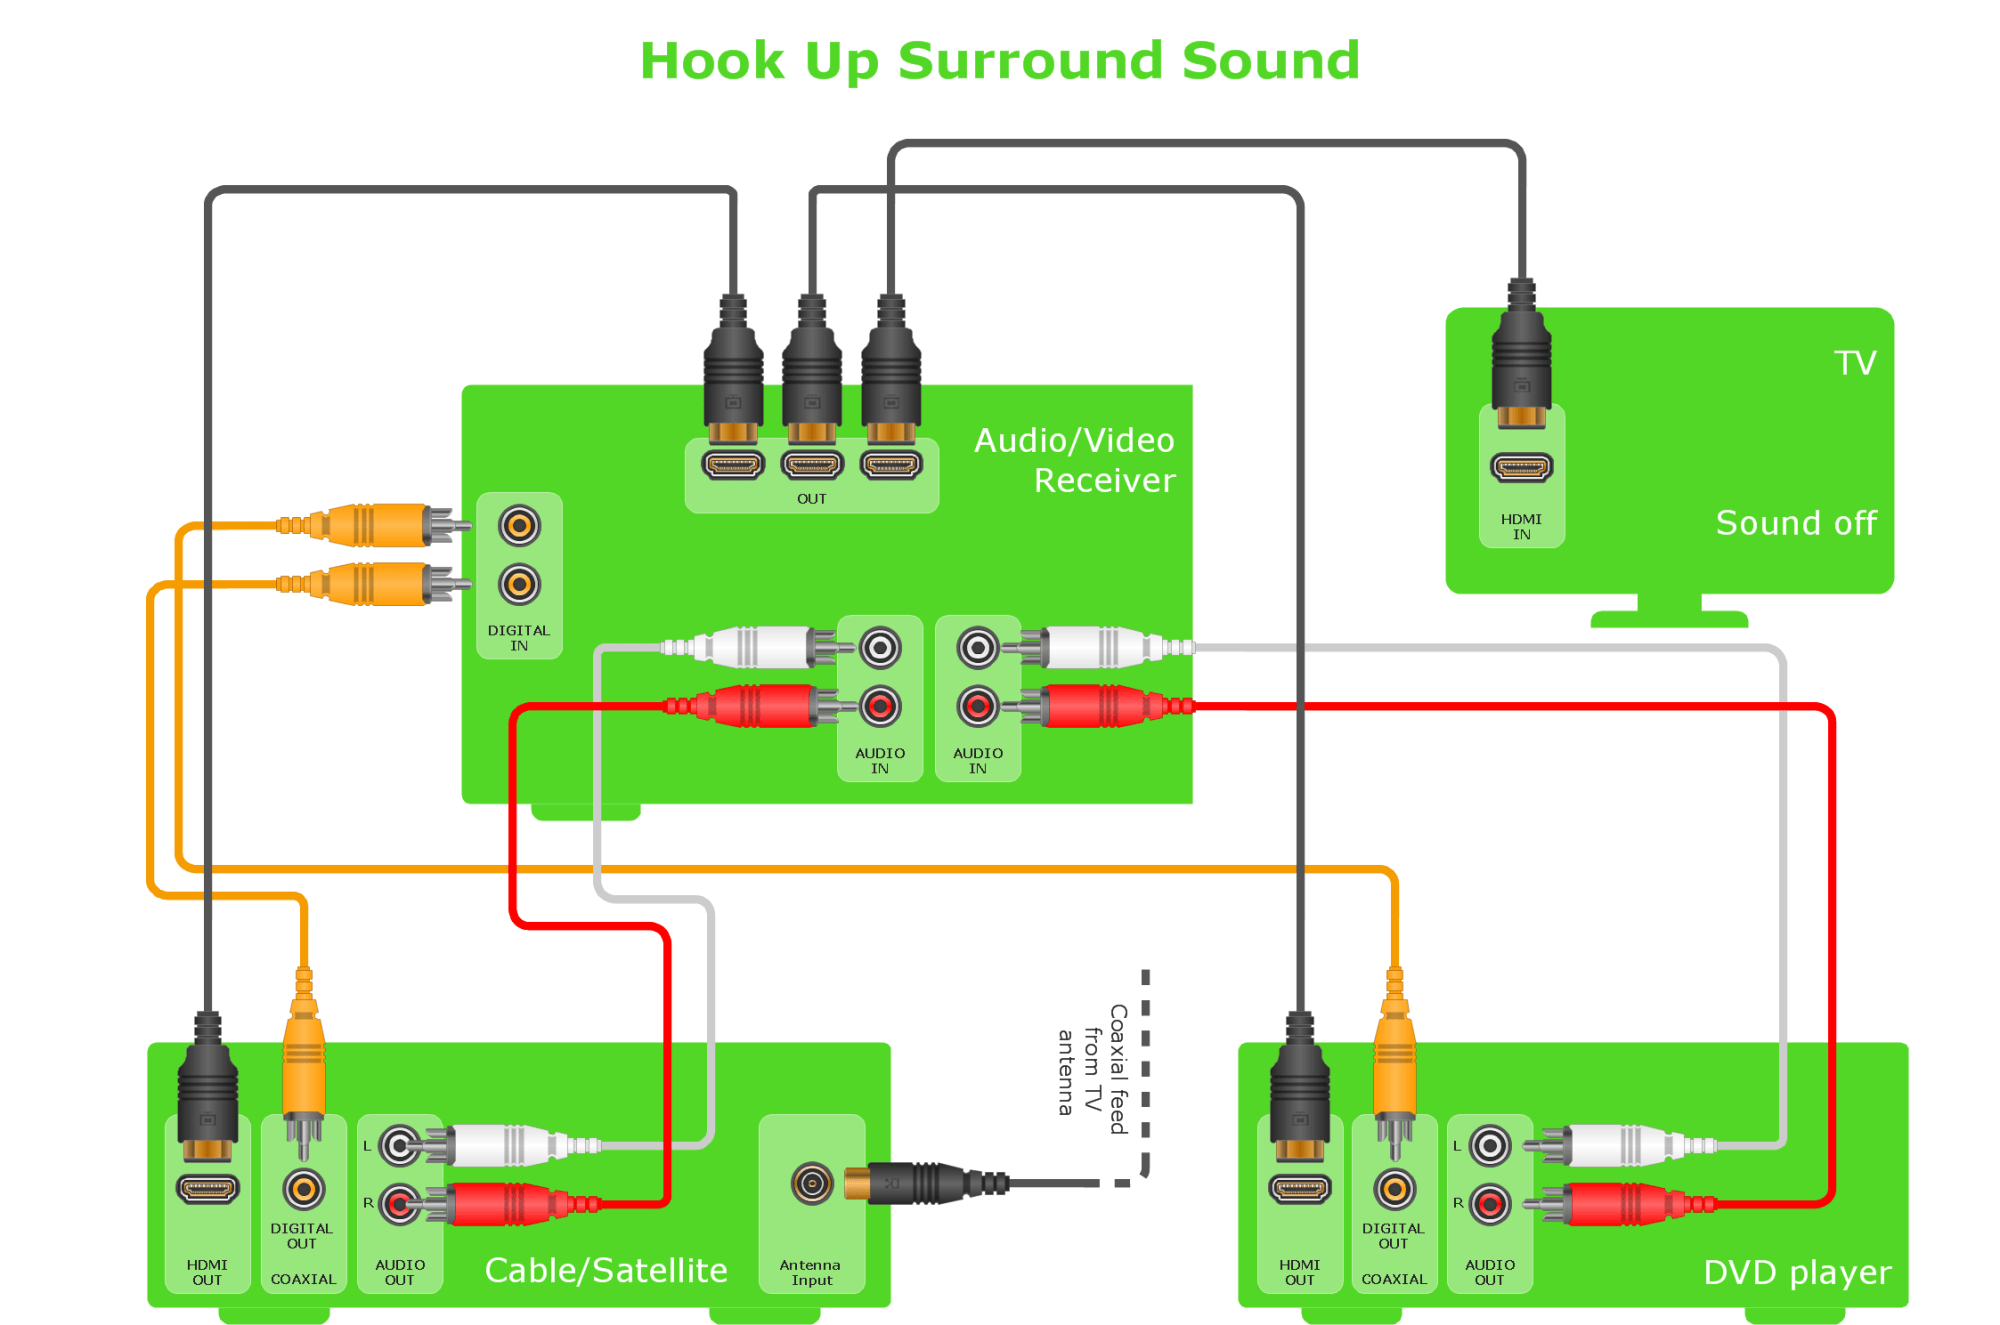 hight resolution of audio and video interfaces and connectors libraries templateshook up diagram home entertainment system with surround